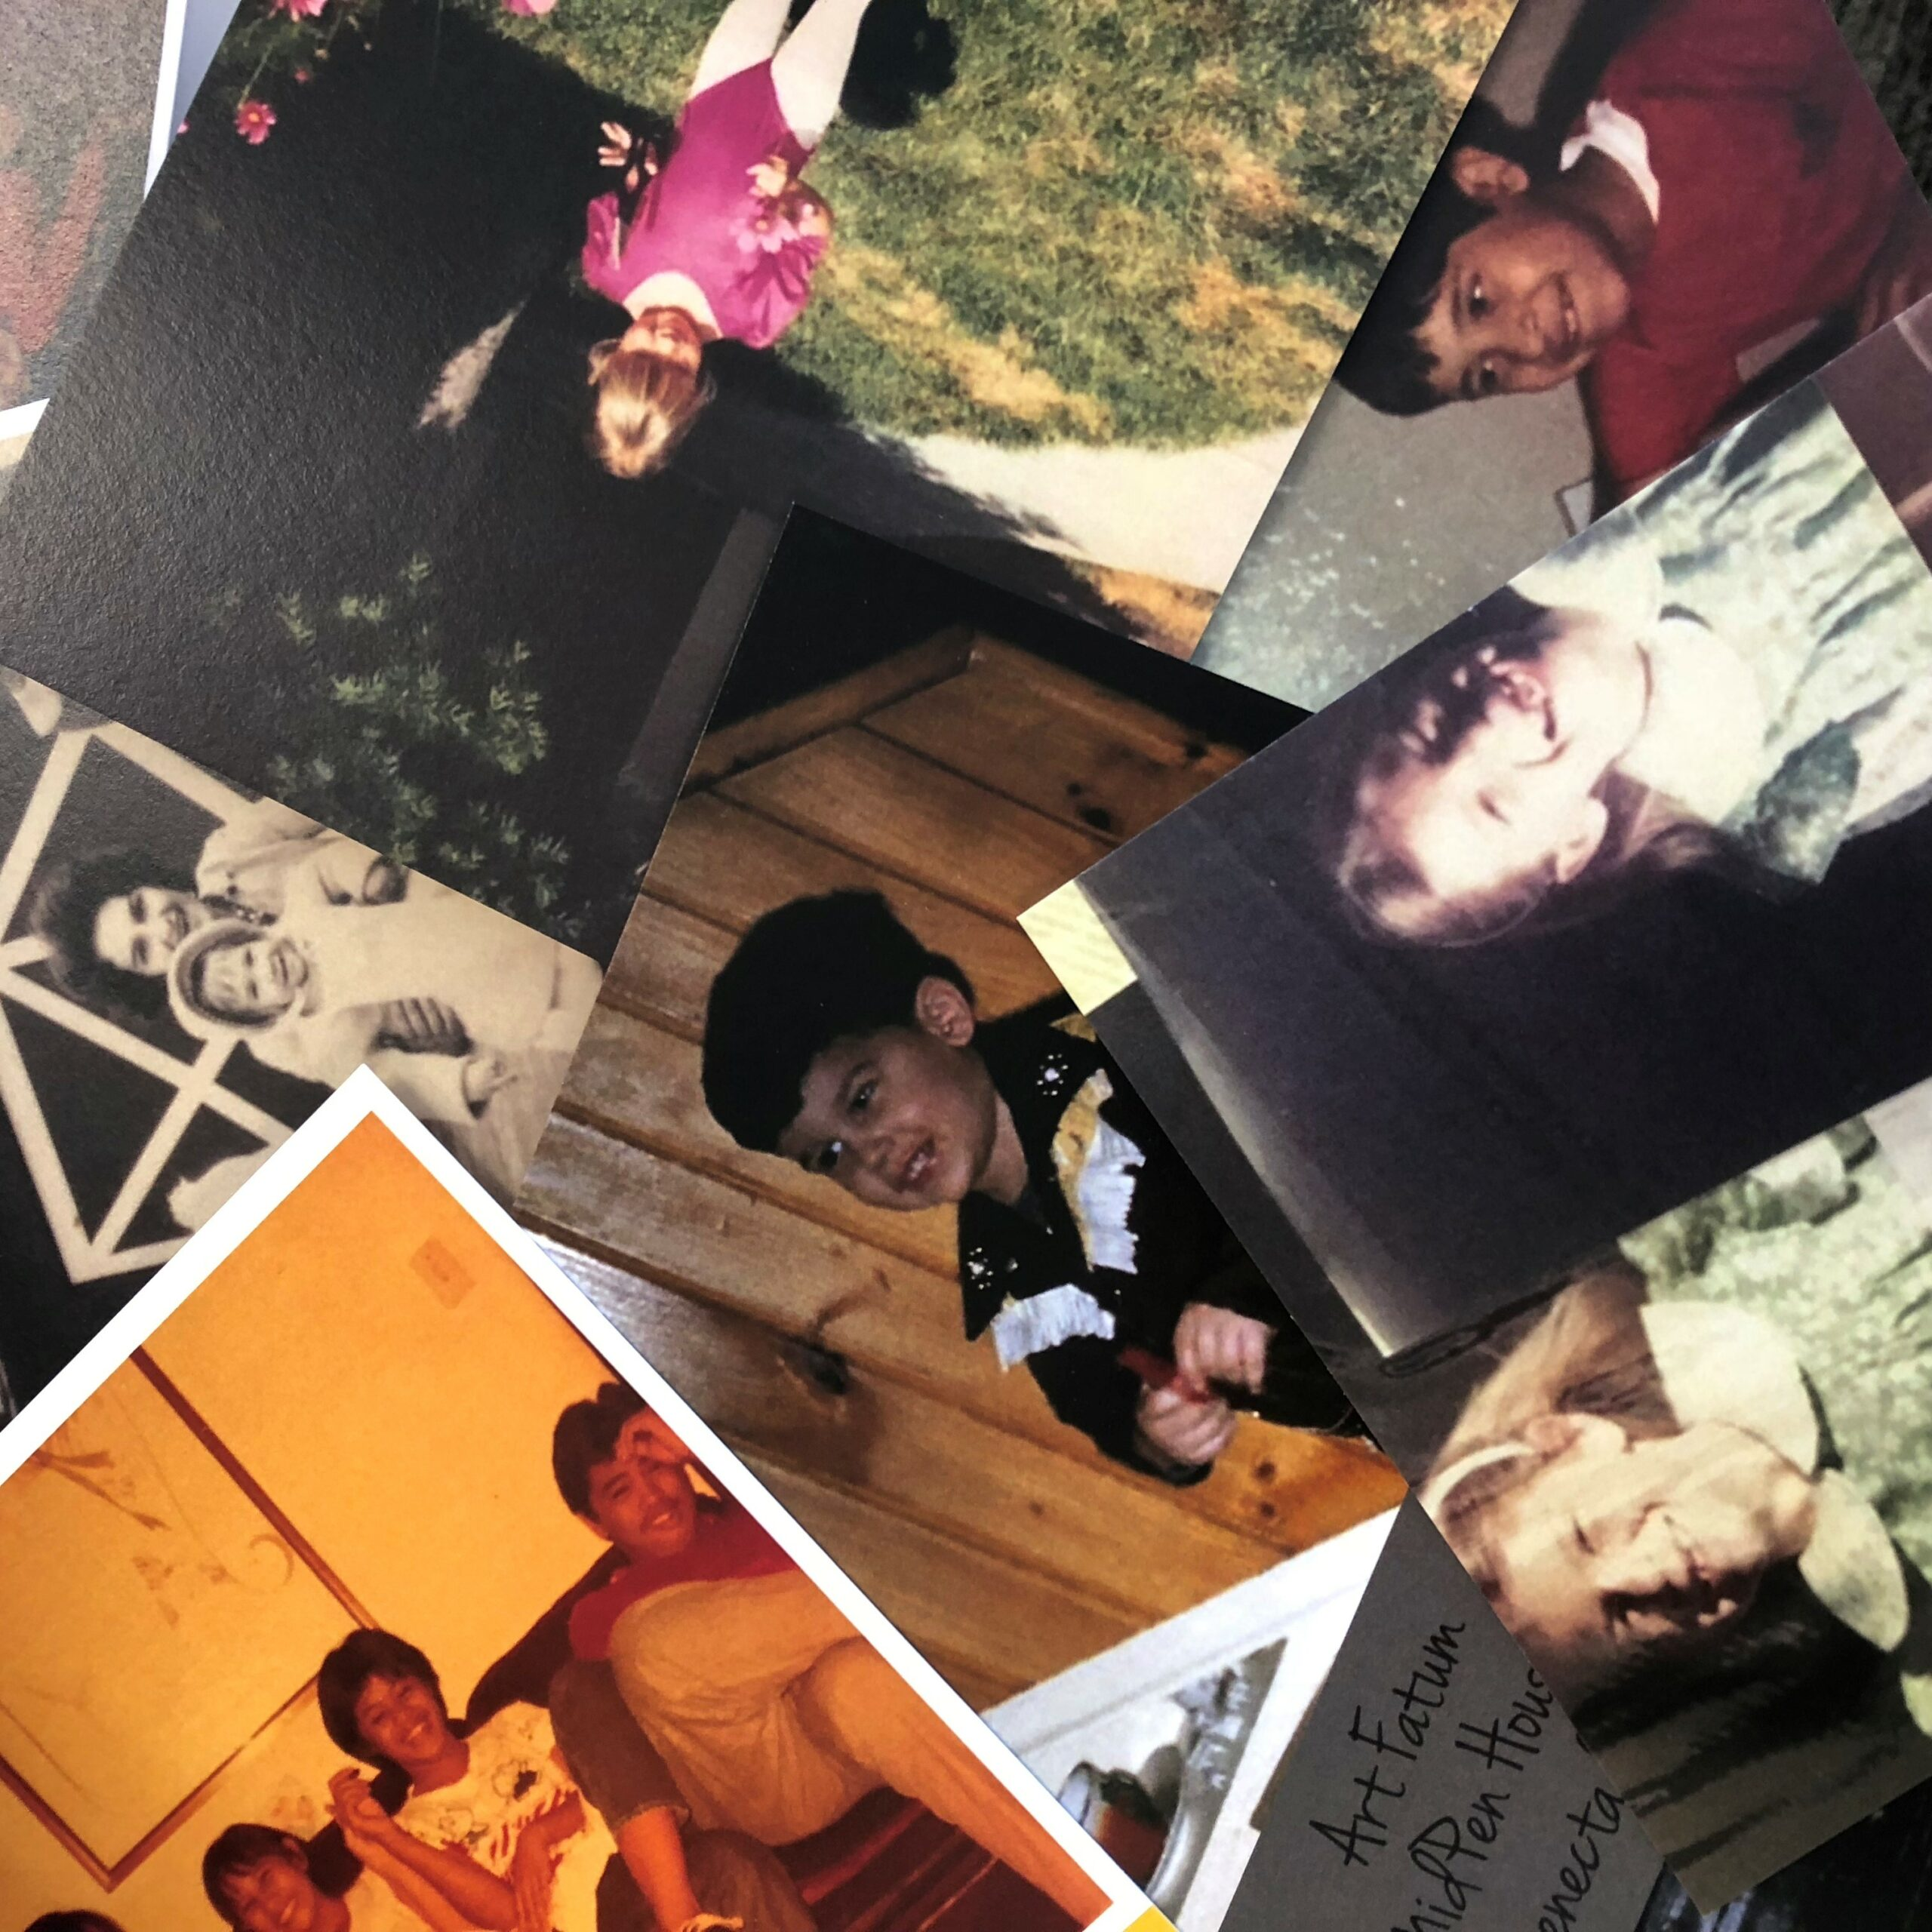 Some of the childhood photos on display at 2018's 'On the House' - the next OTH is Oct. 7, 2019 at District SJ in San Jose